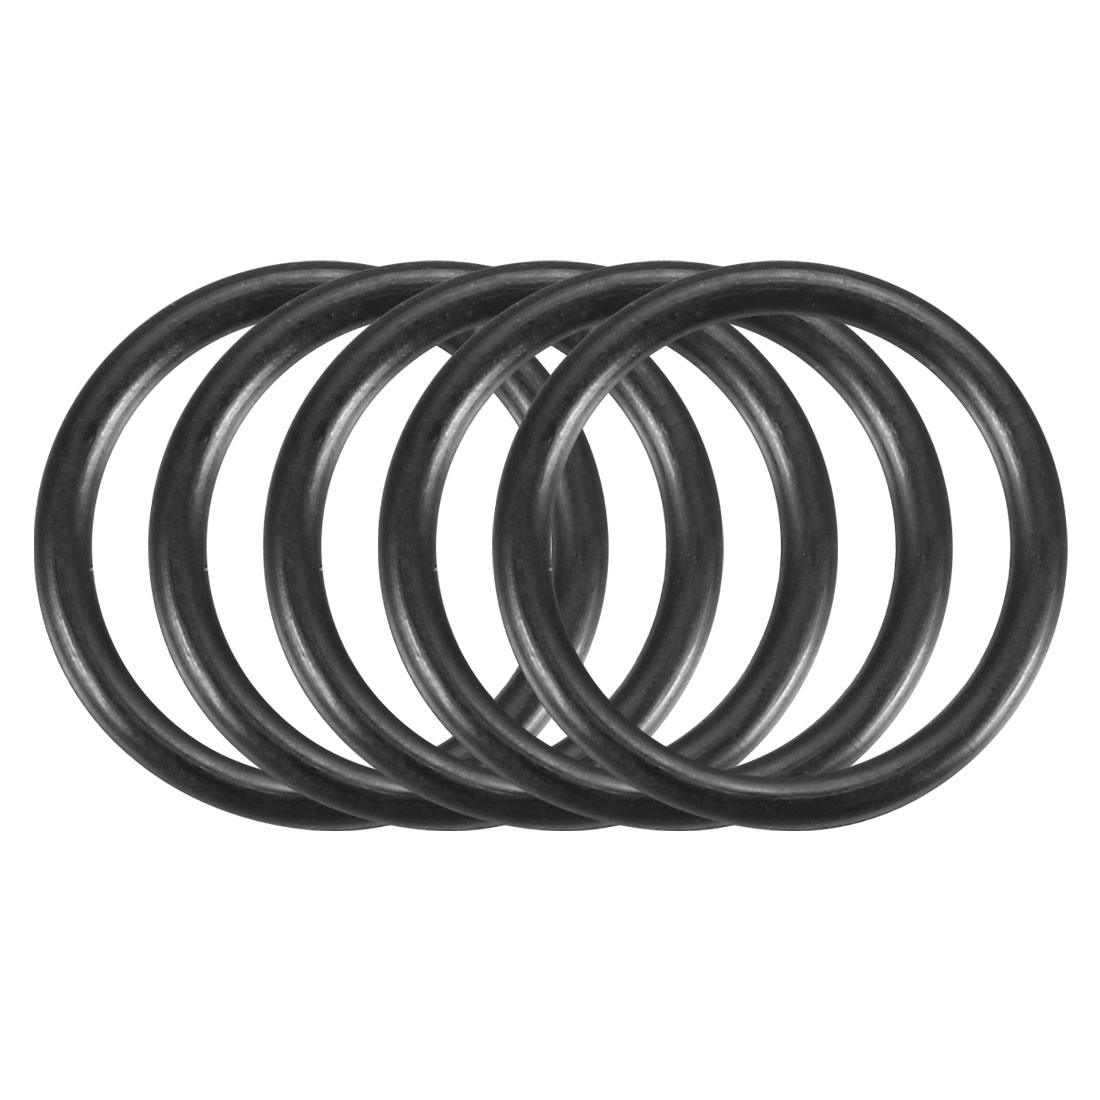 100Pcs 11x1.2mm Nitrile Rubber O-ring Heat Resistant Sealing Ring Grommets Black